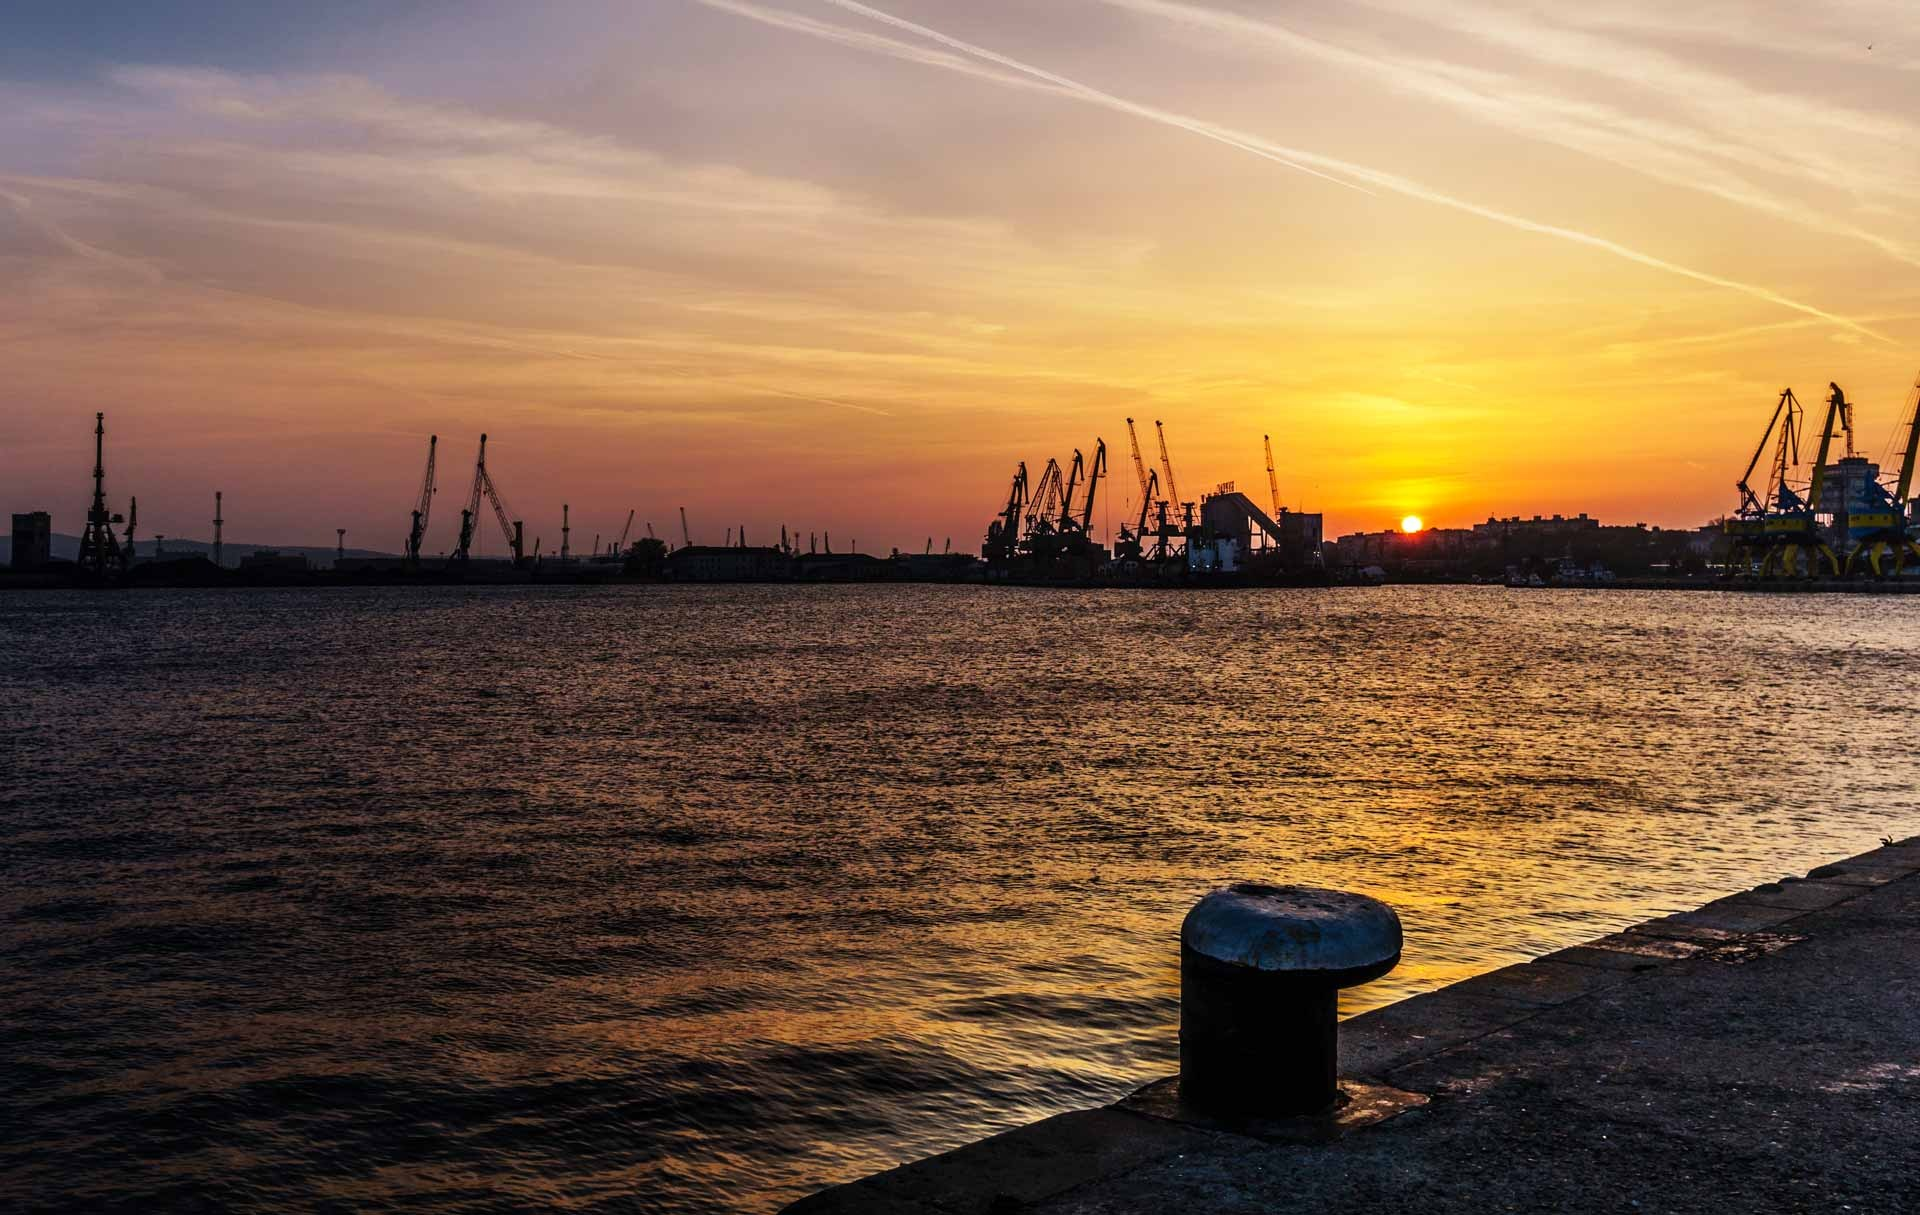 Sunset above the port by Venelin Todorov